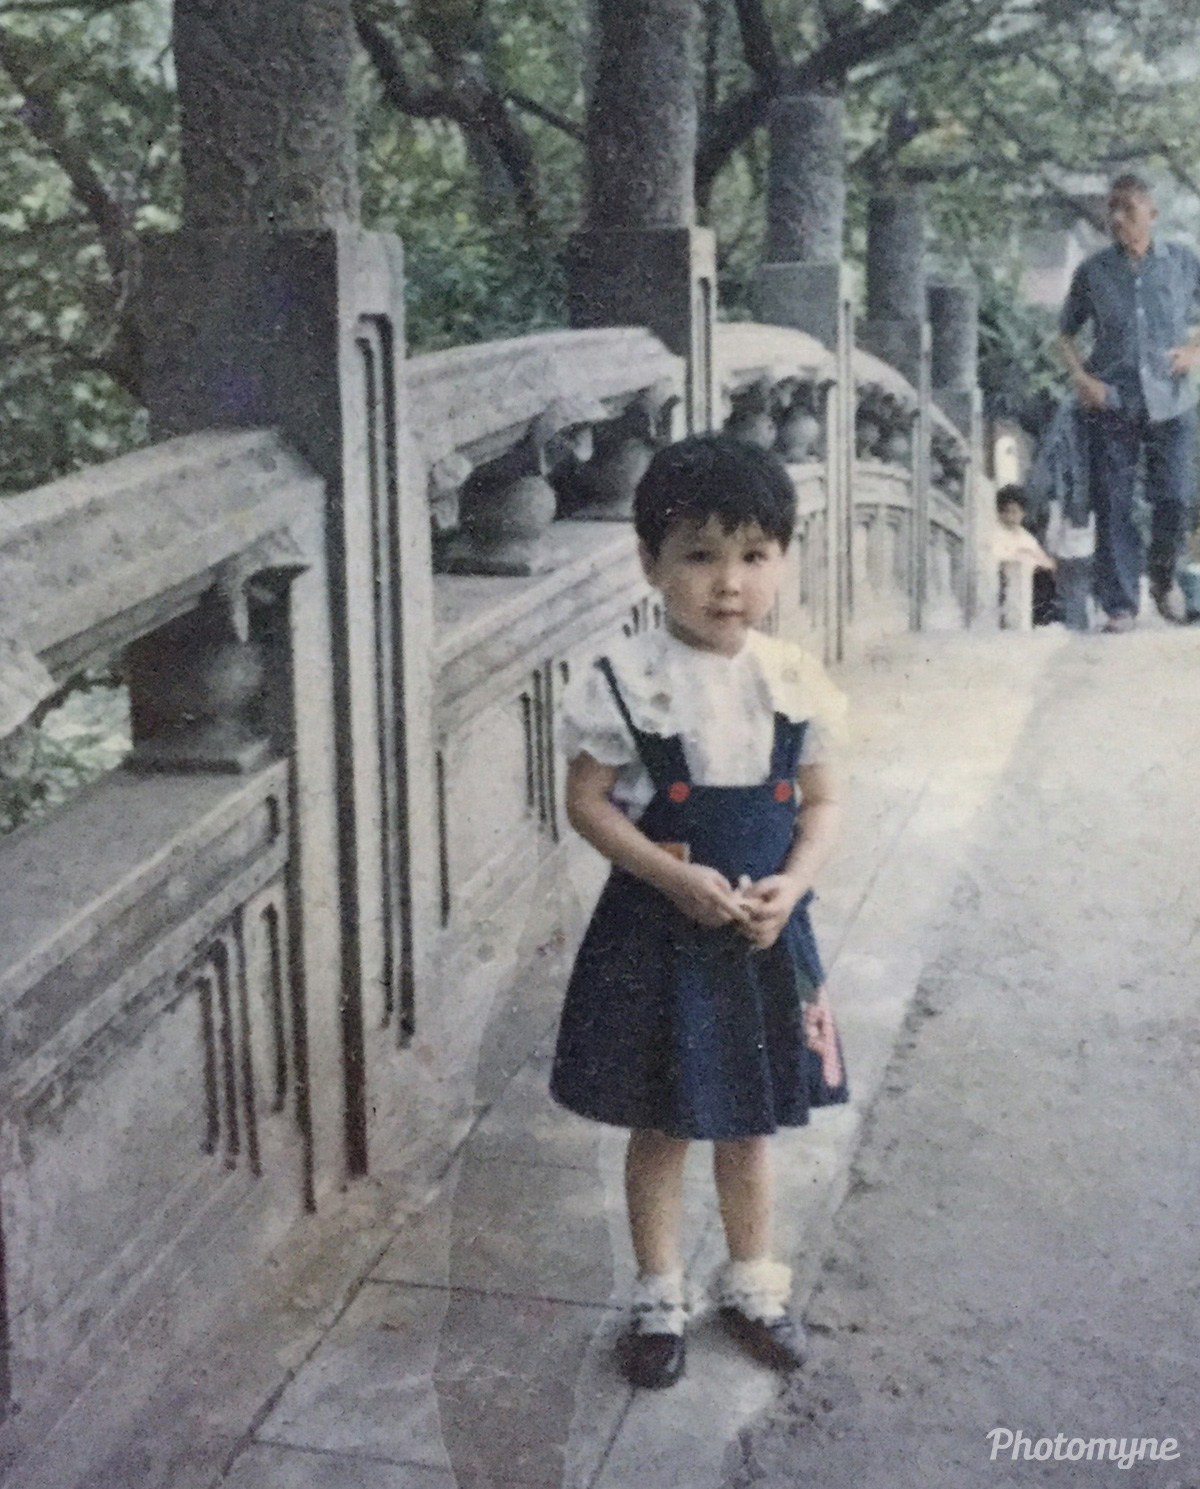 When i was young, China, 1990